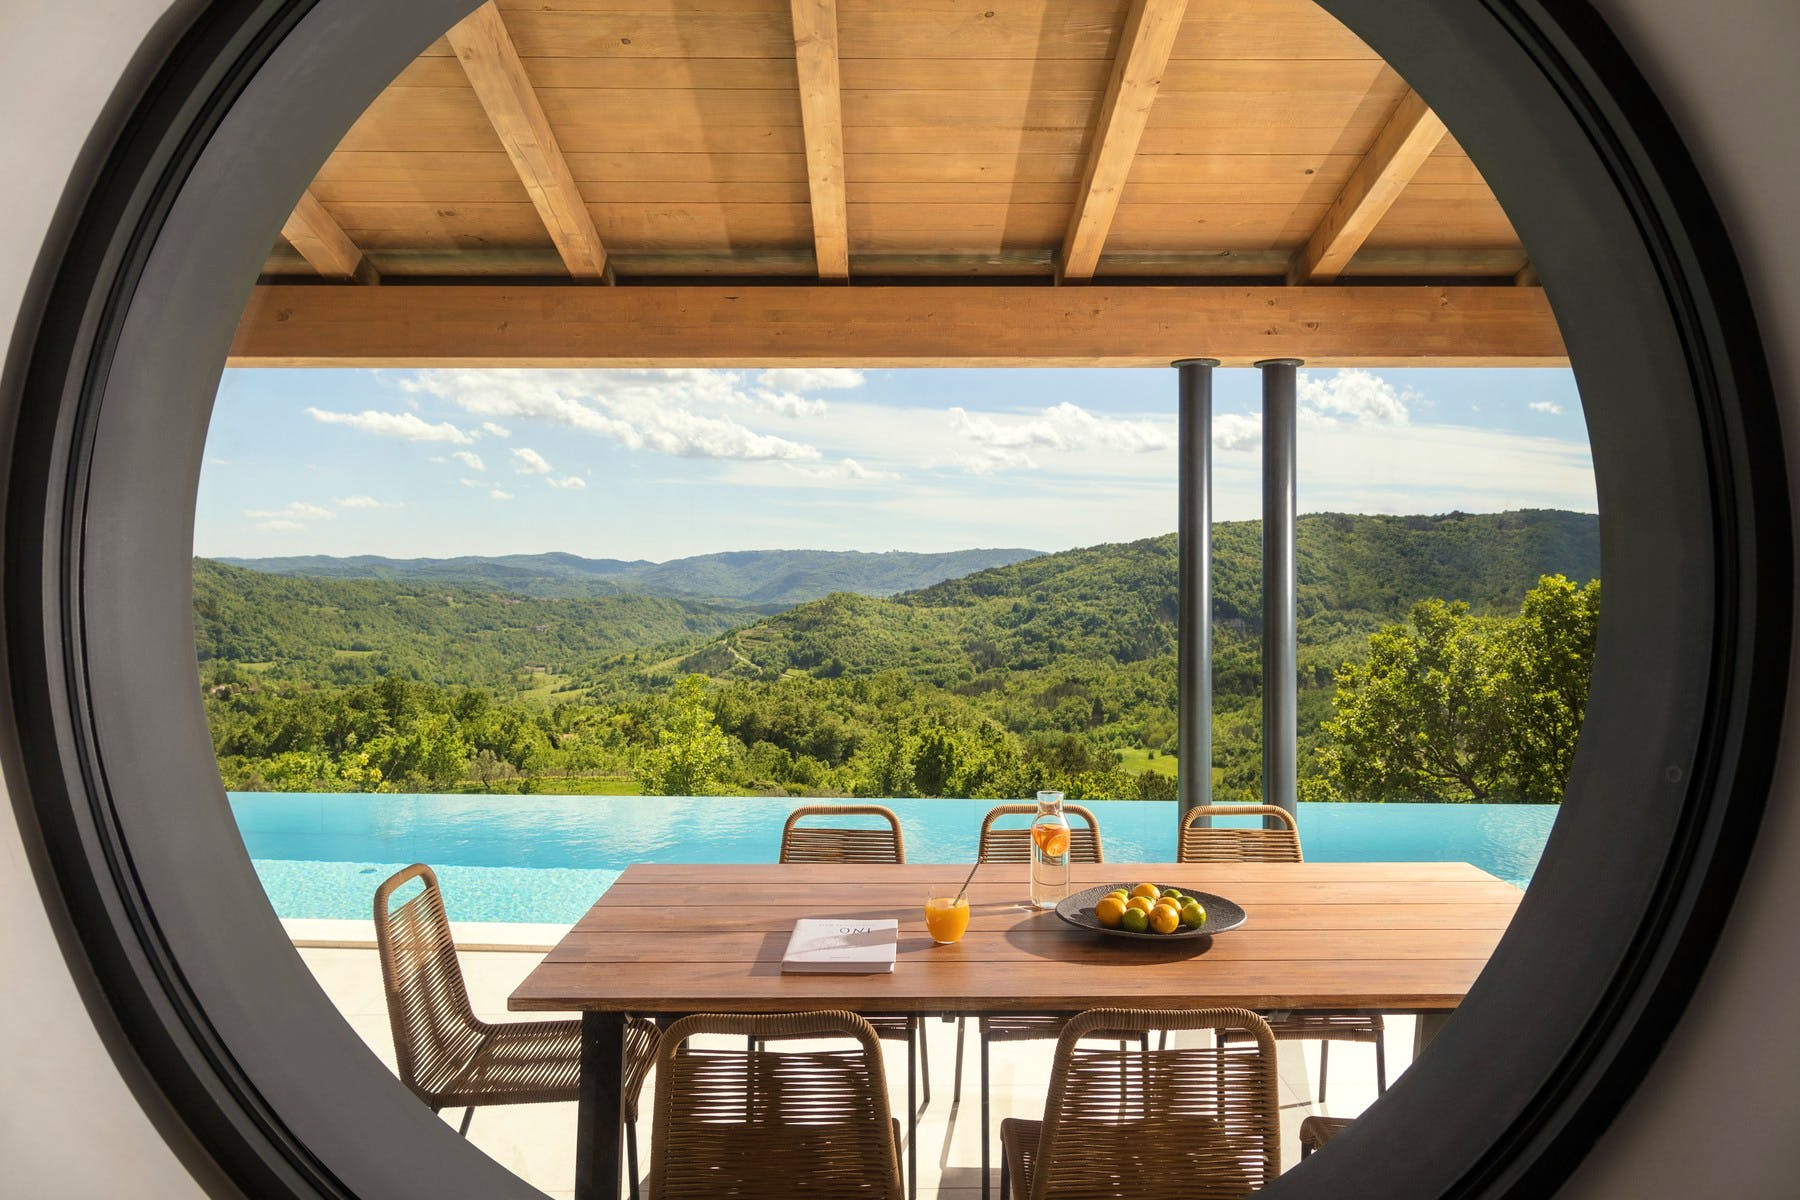 Covered terrace with dining area andstunning view